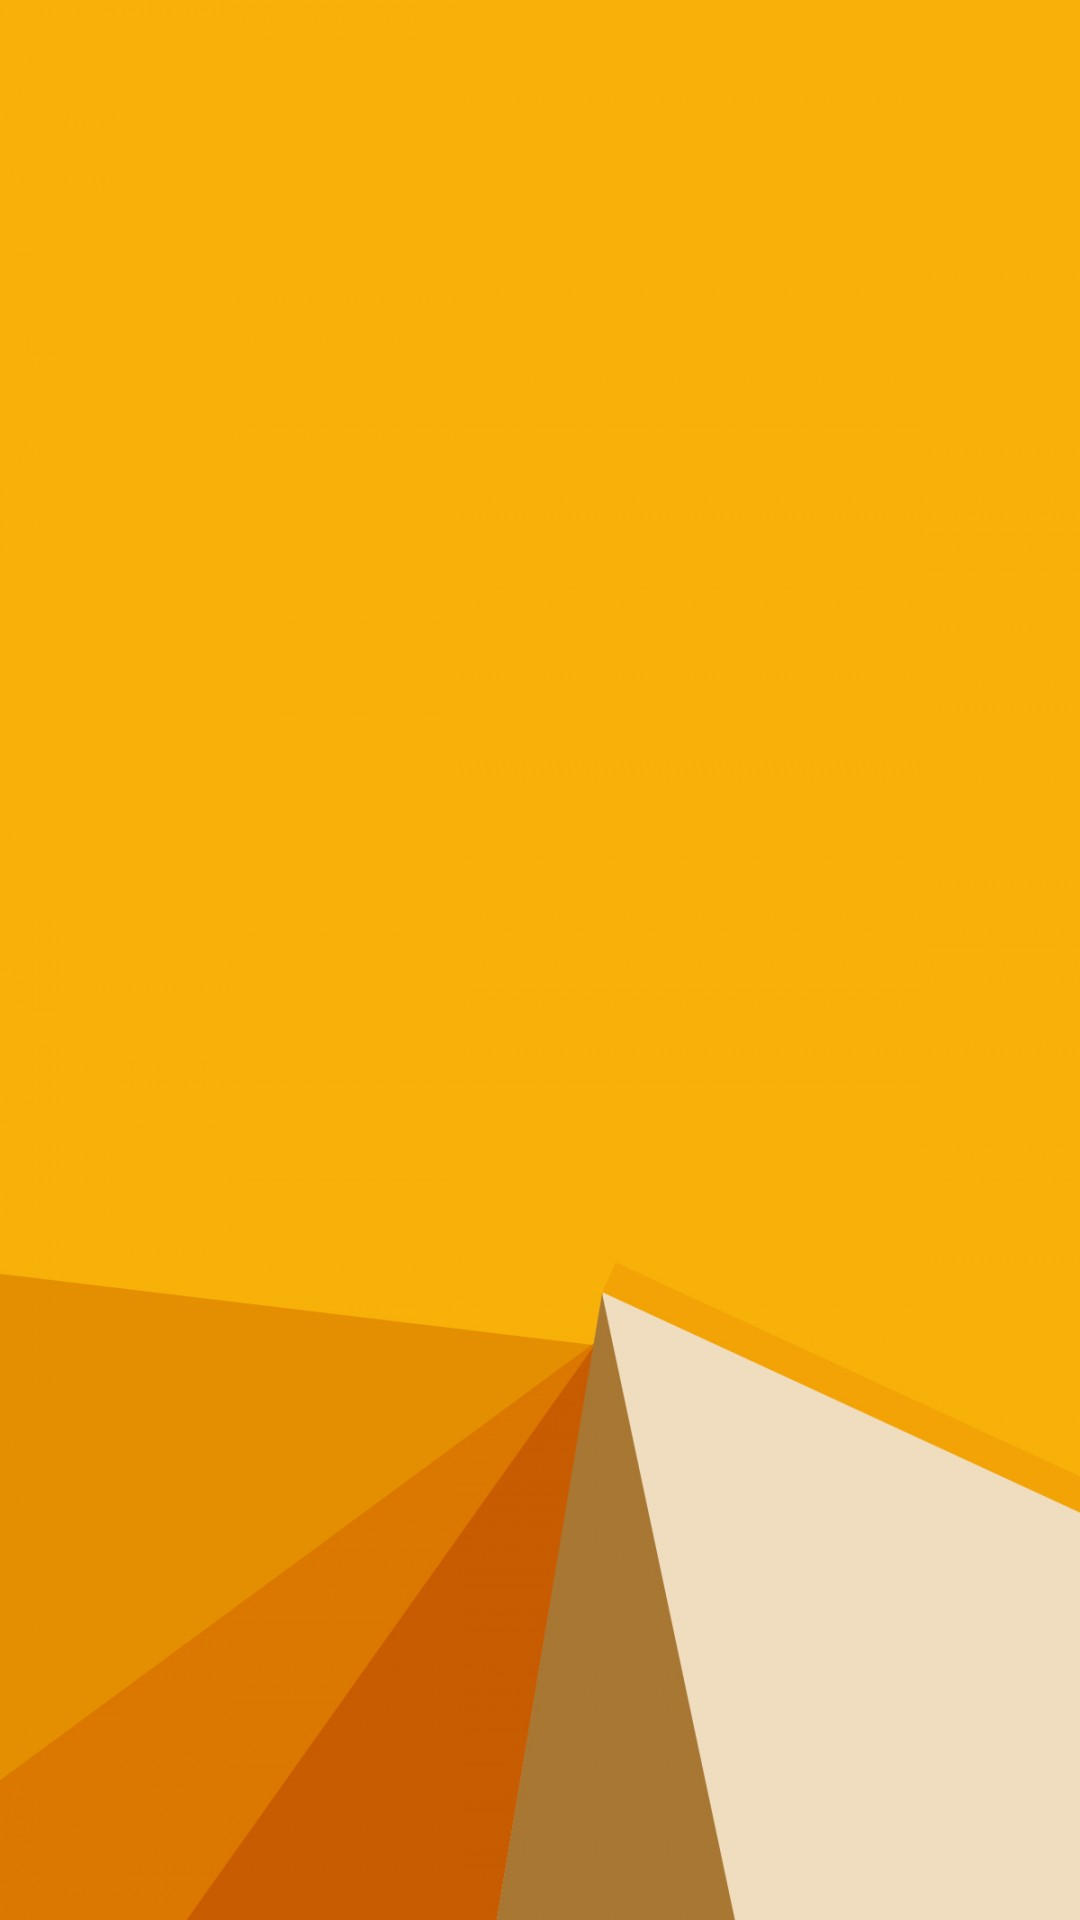 Wallpaper Polygon Yellow 4k Os 15376